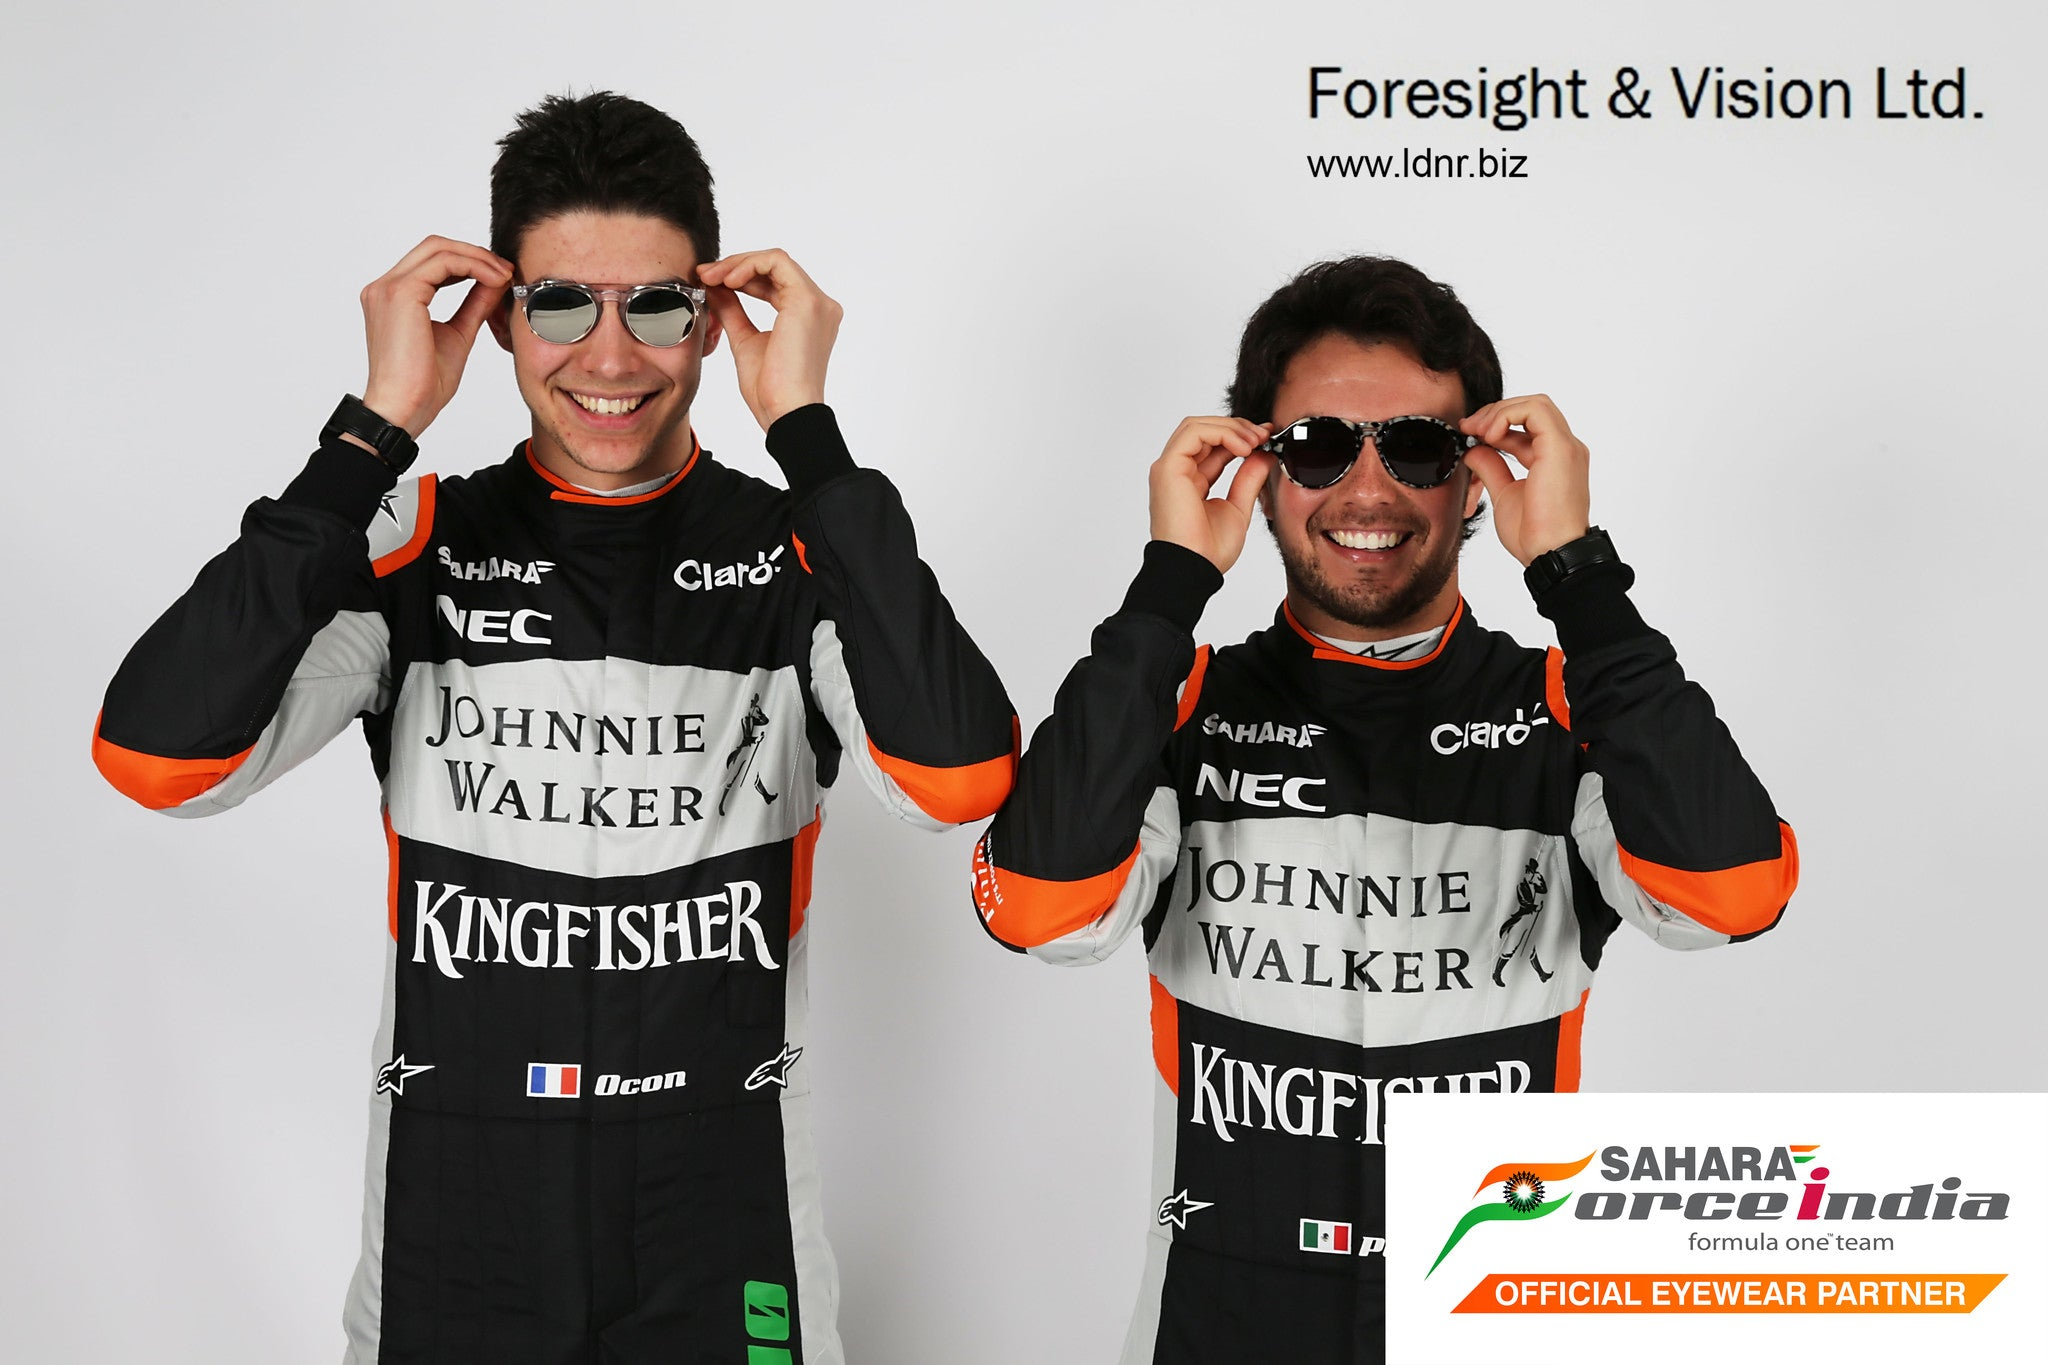 Behind the scenes fittings for the launch of LDNR Eyewear with Sahara Force India Formula One